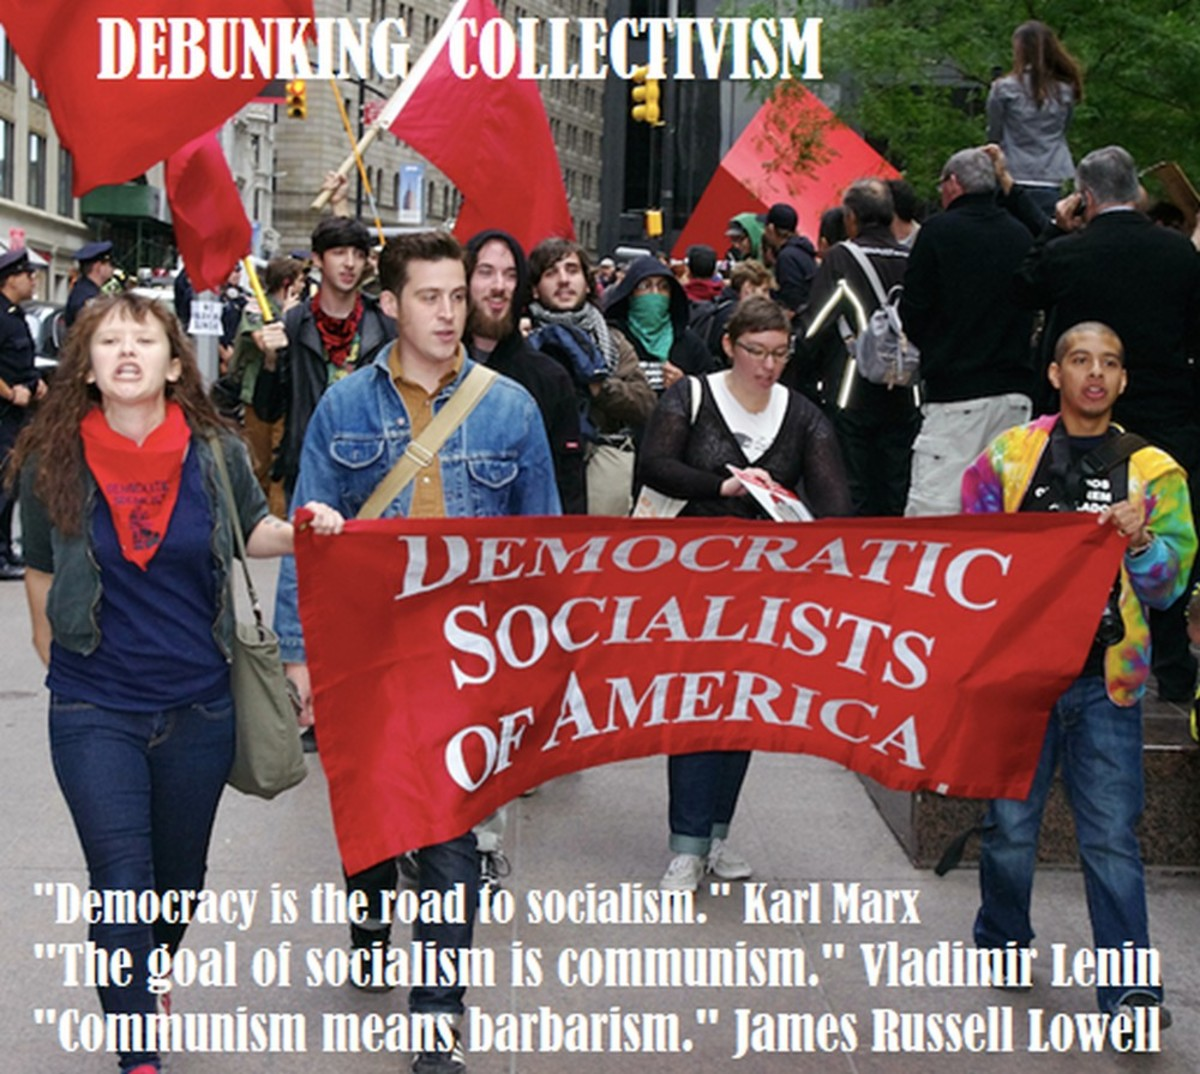 orwellian-newspeak-and-the-six-conundrums-of-socialism